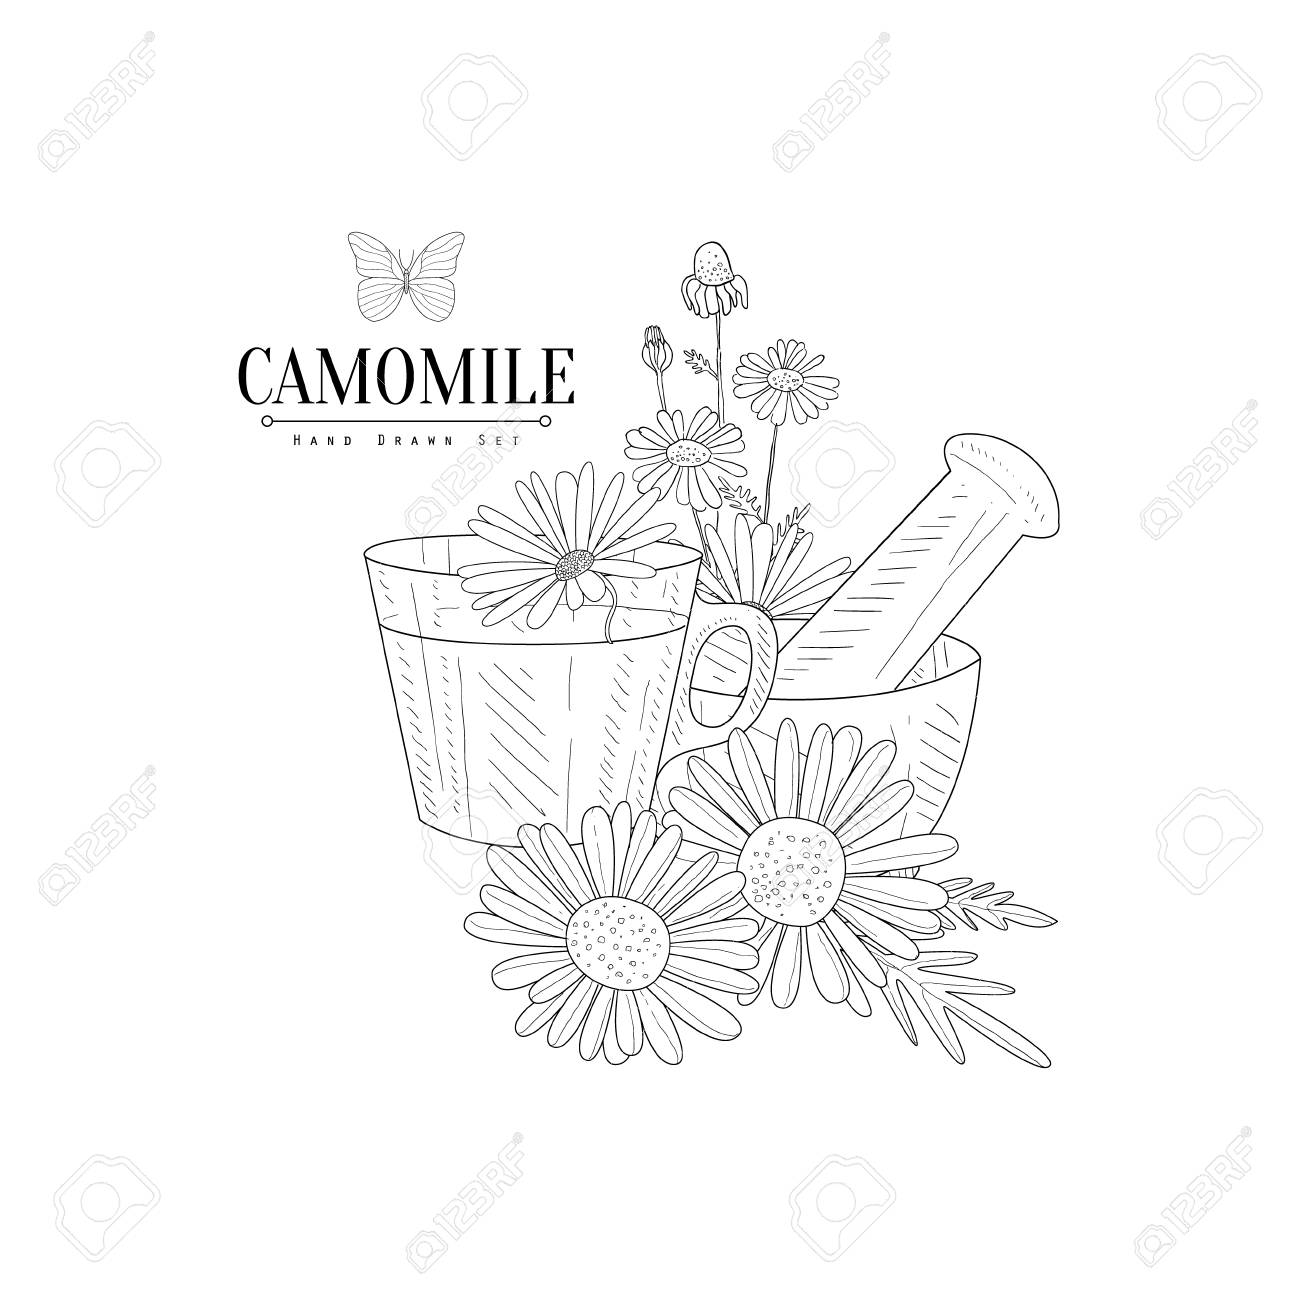 1300x1300 Camomile Tea, Pestle And Mortar Hand Drawn Realistic Detailed